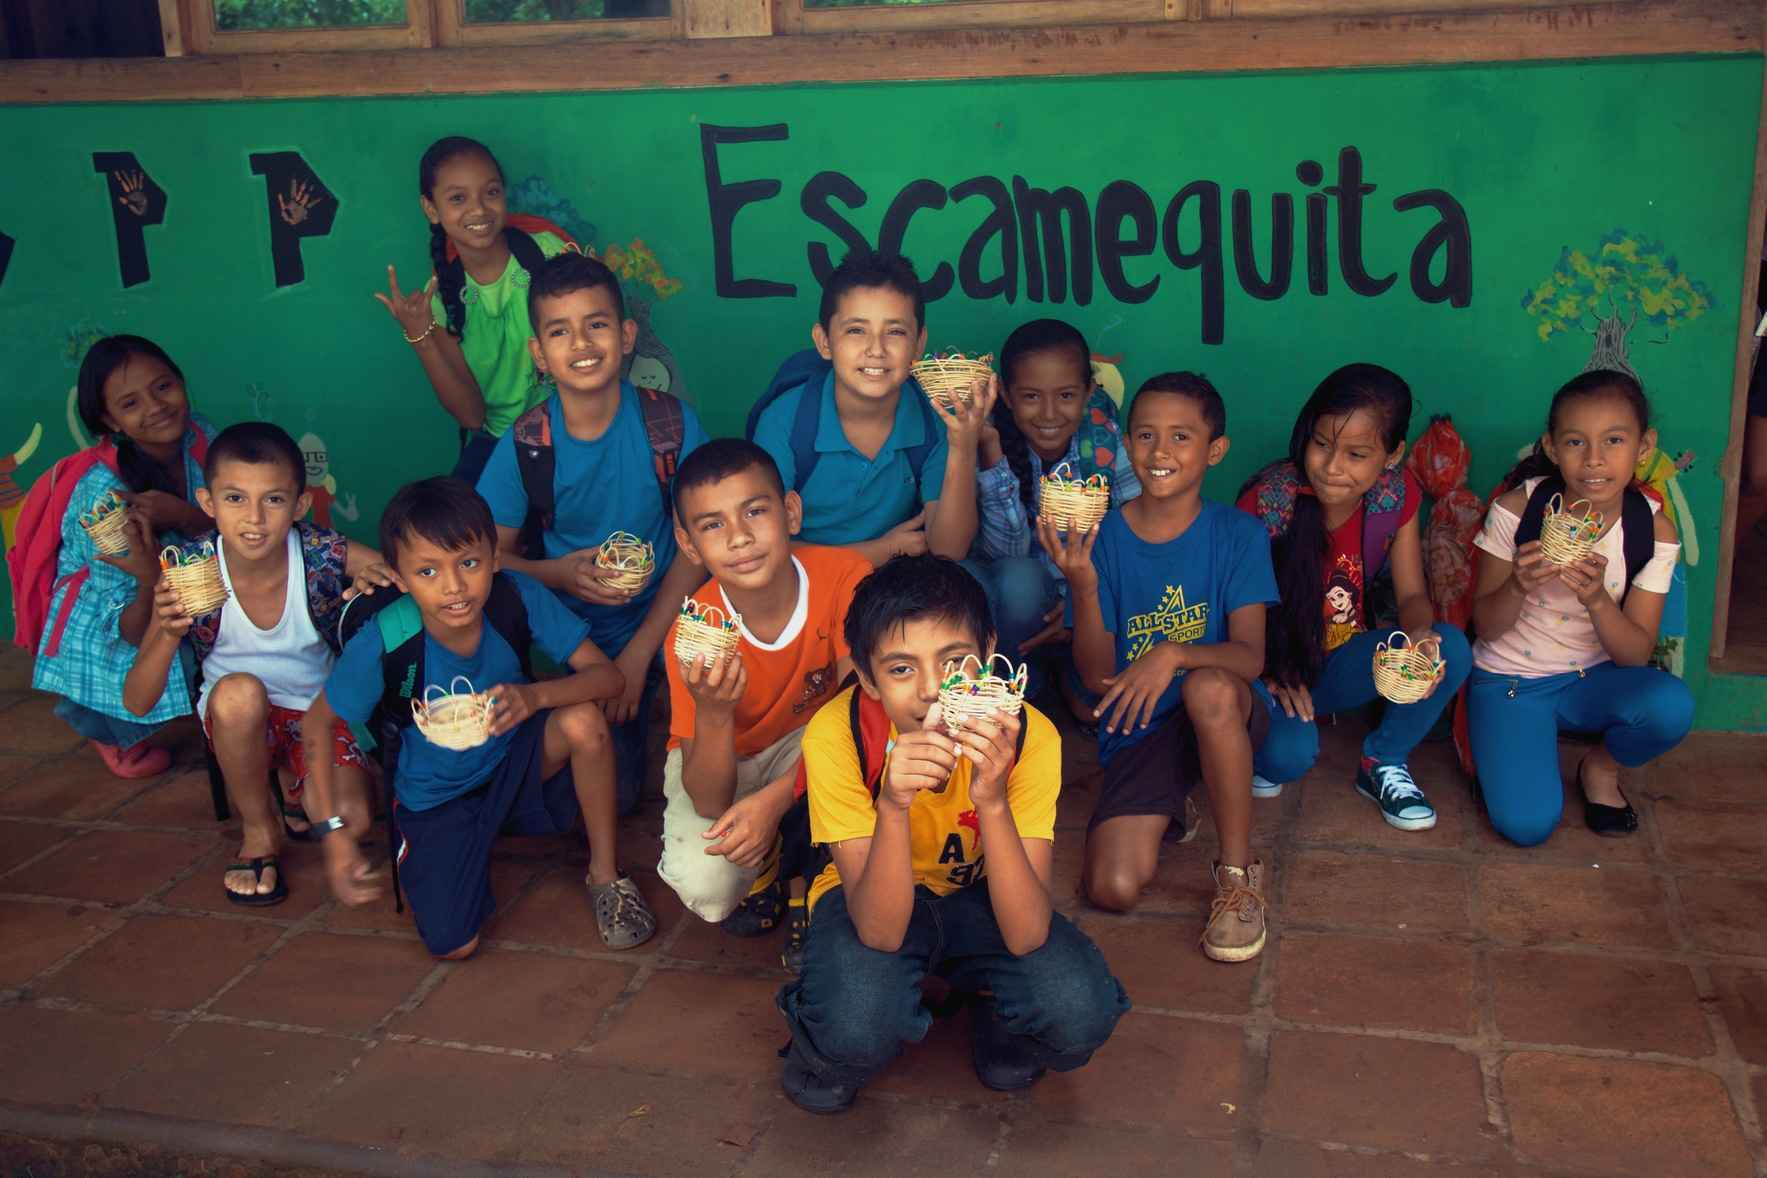 Support the Escamequita Project  image